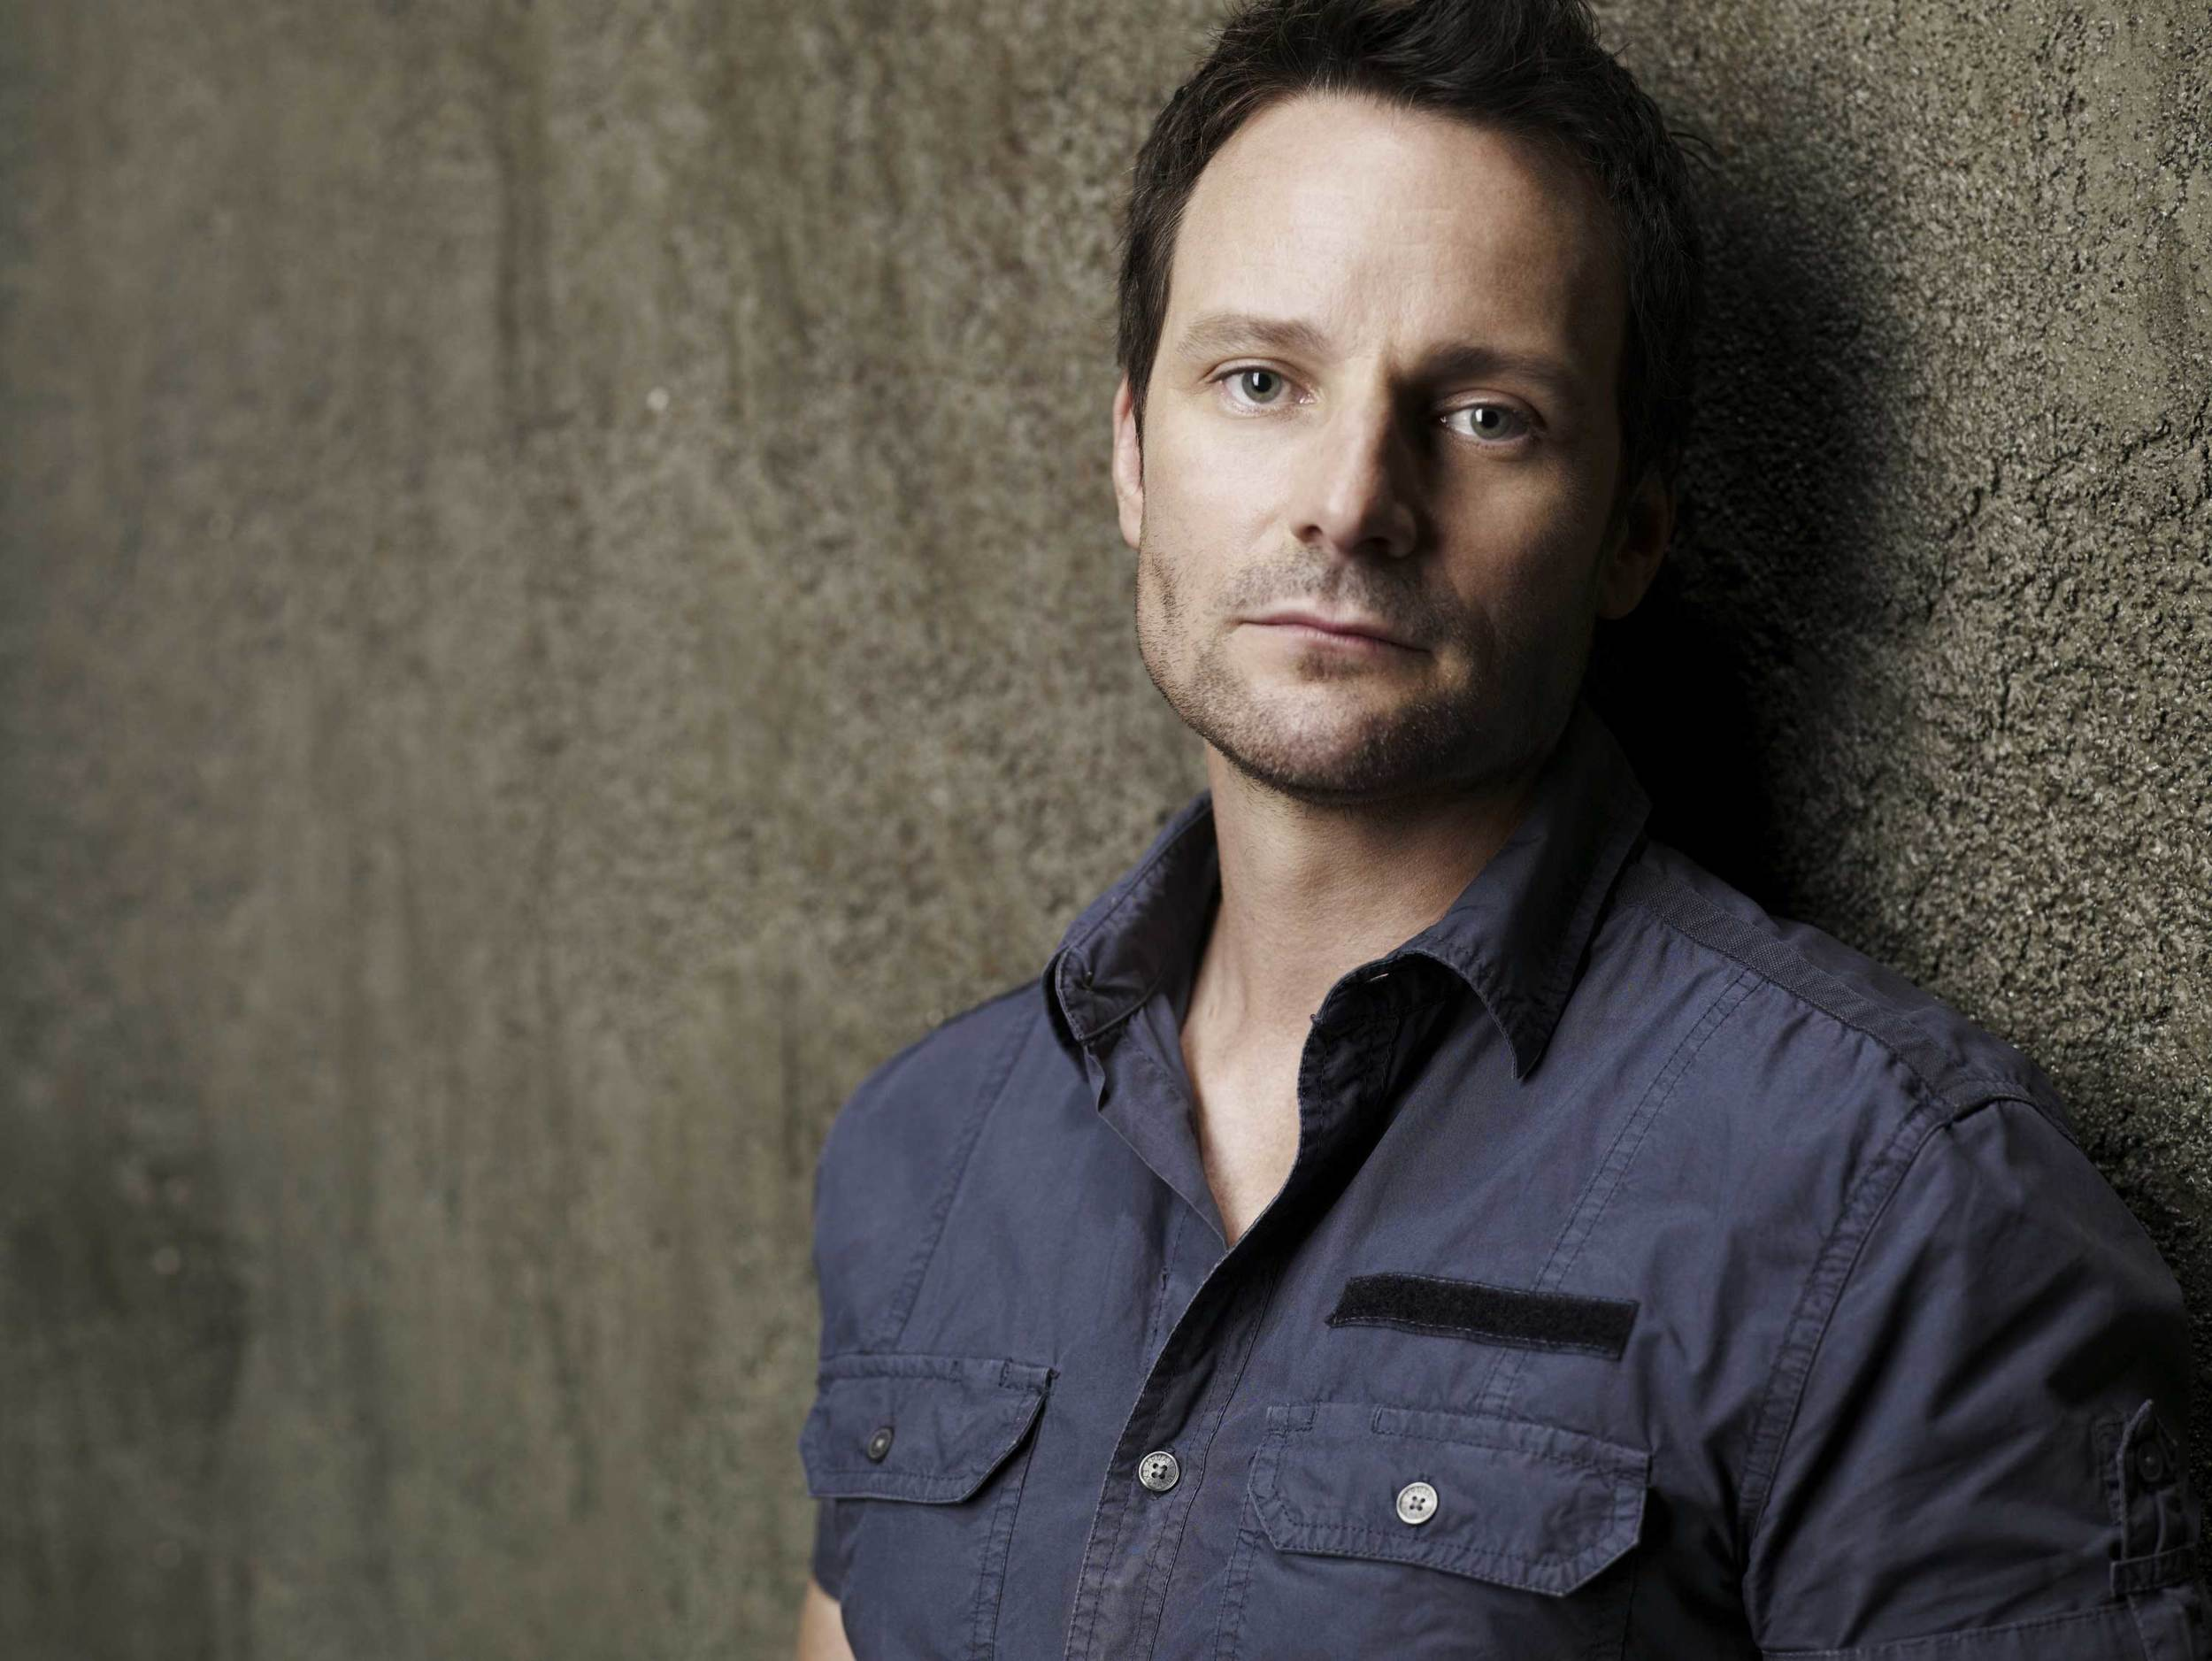 ryan-robbins-photo-2-hi-res.jpg